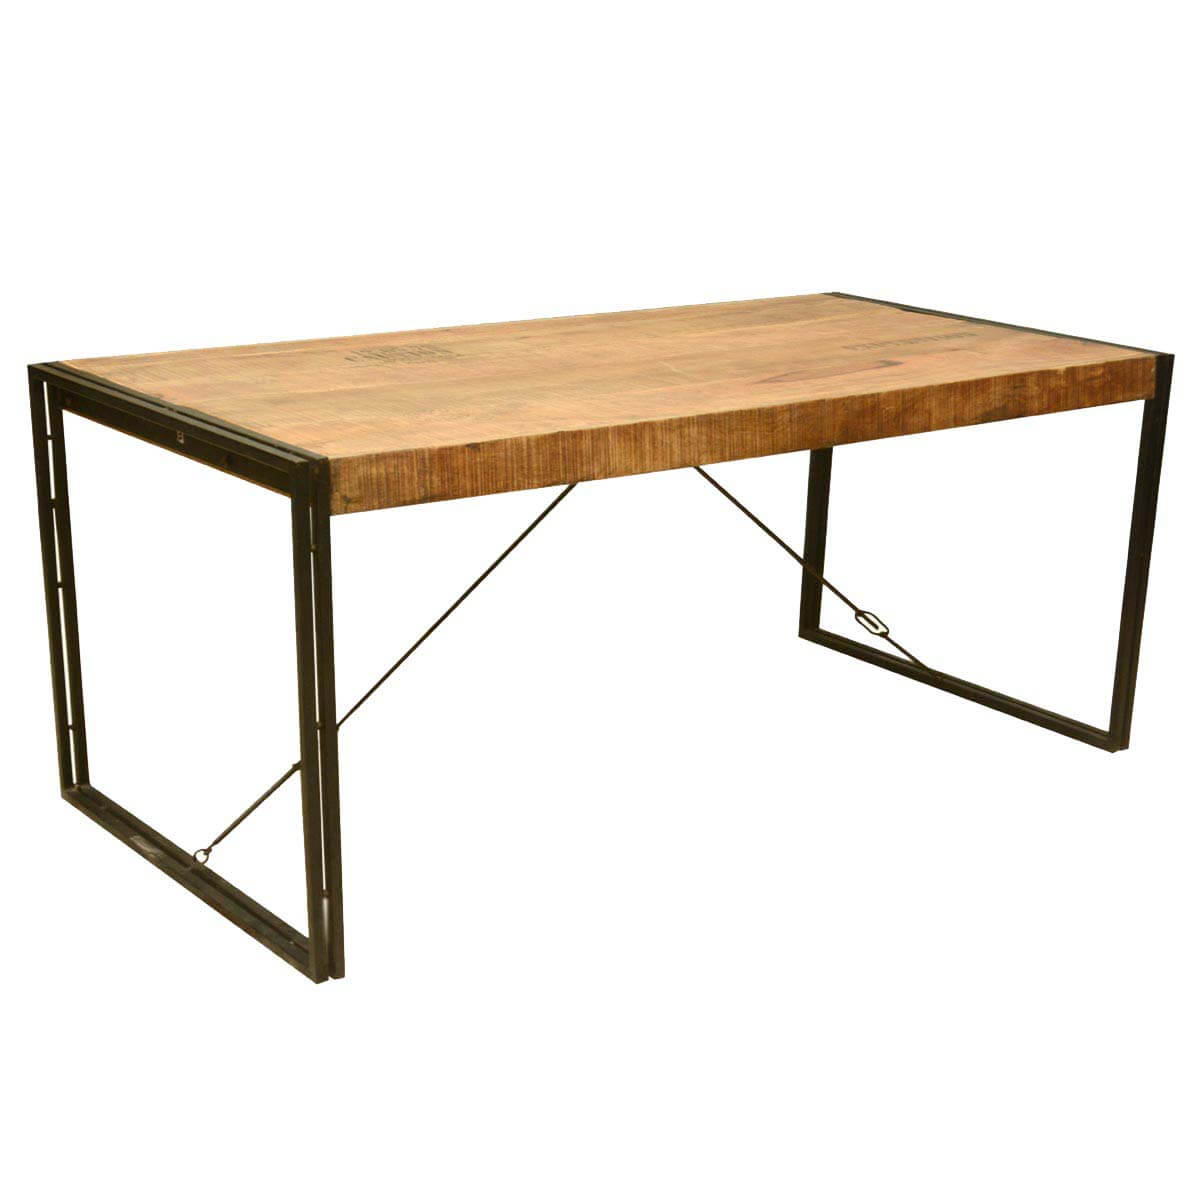 Large rustic industrial style mango wood and iron dining table for Rustic industrial